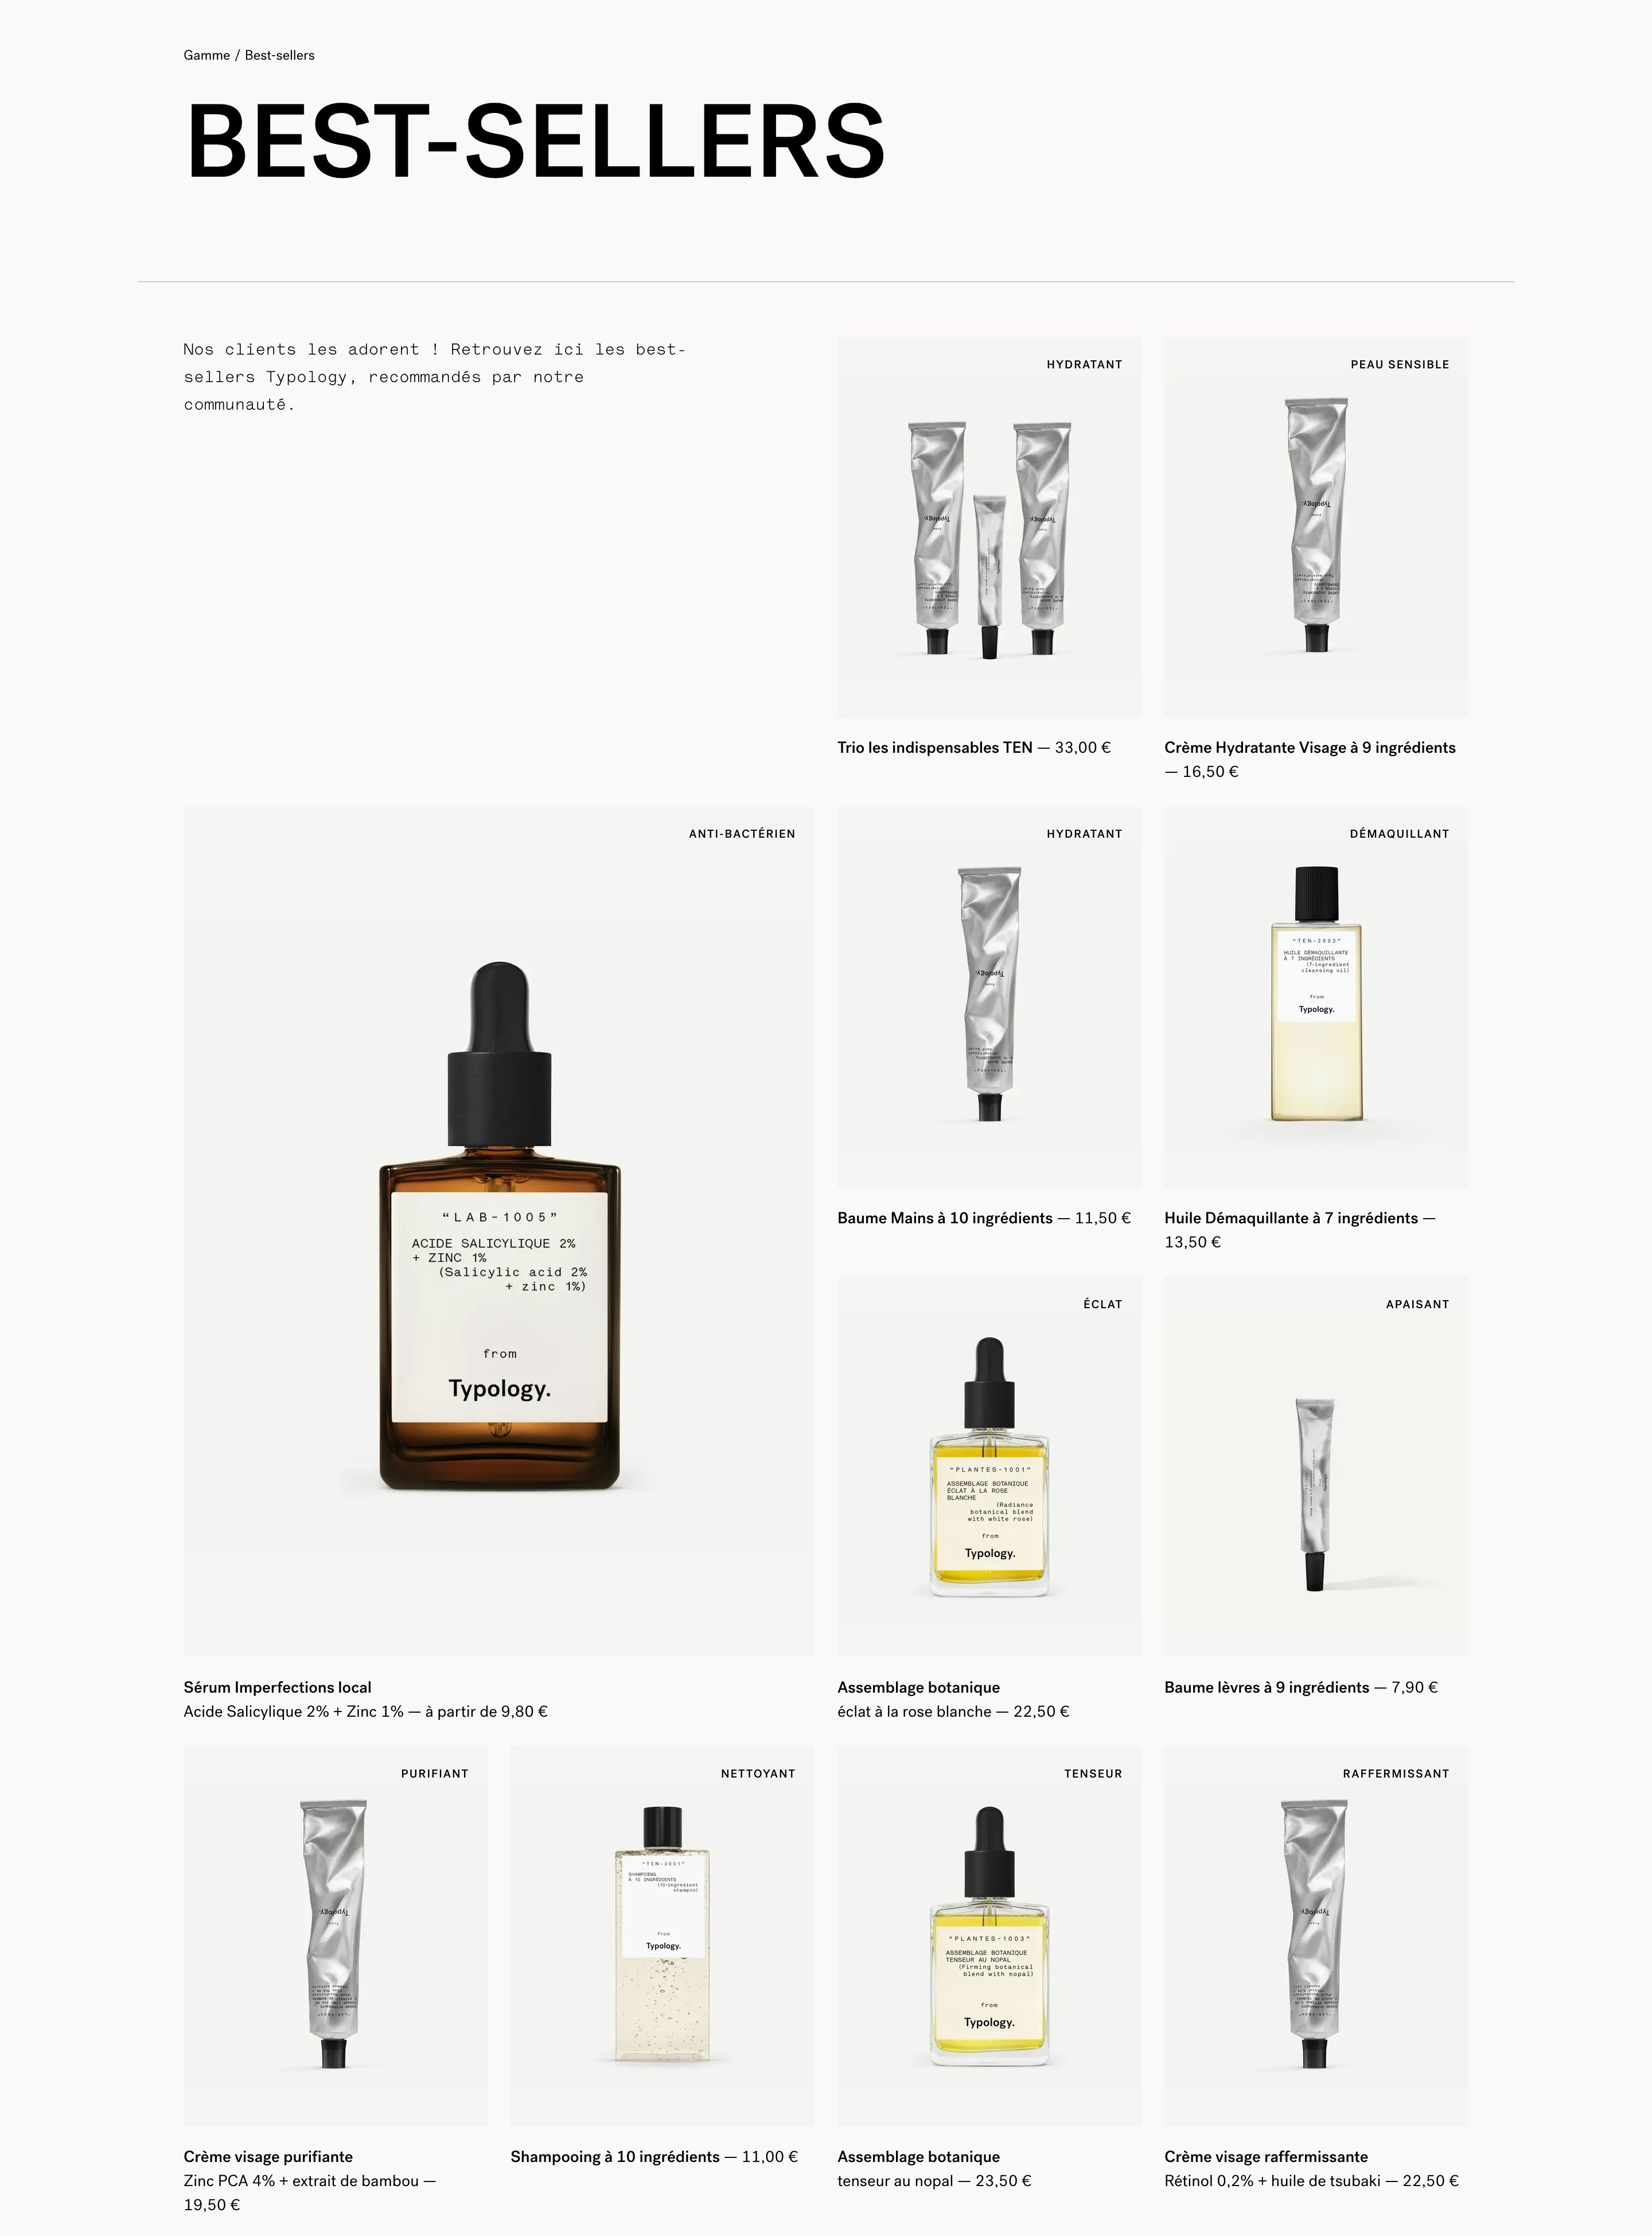 Products List with Photos and Price